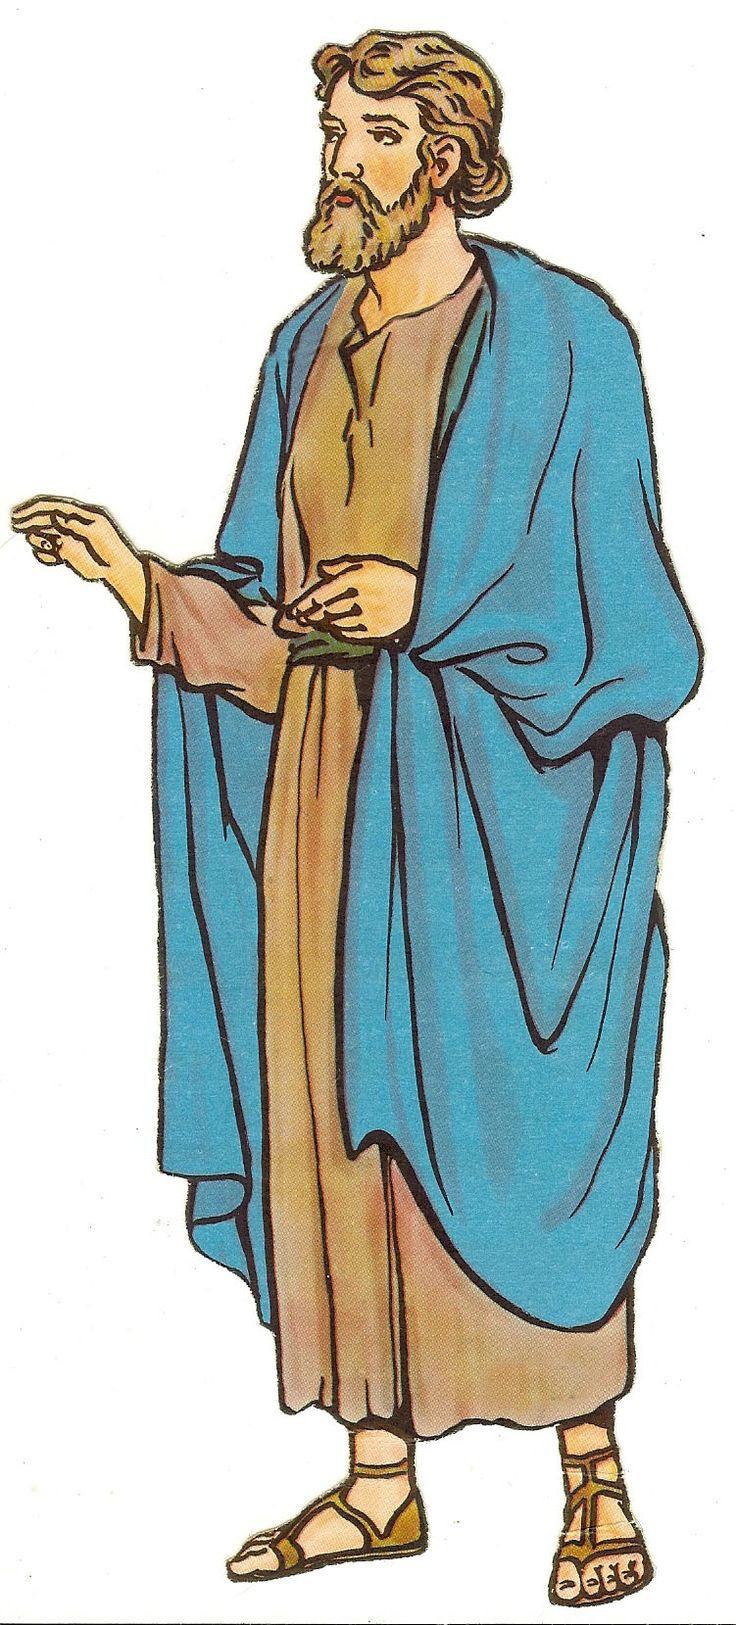 Man showing bible clipart transparent library Man showing bible clipart - ClipartFox transparent library